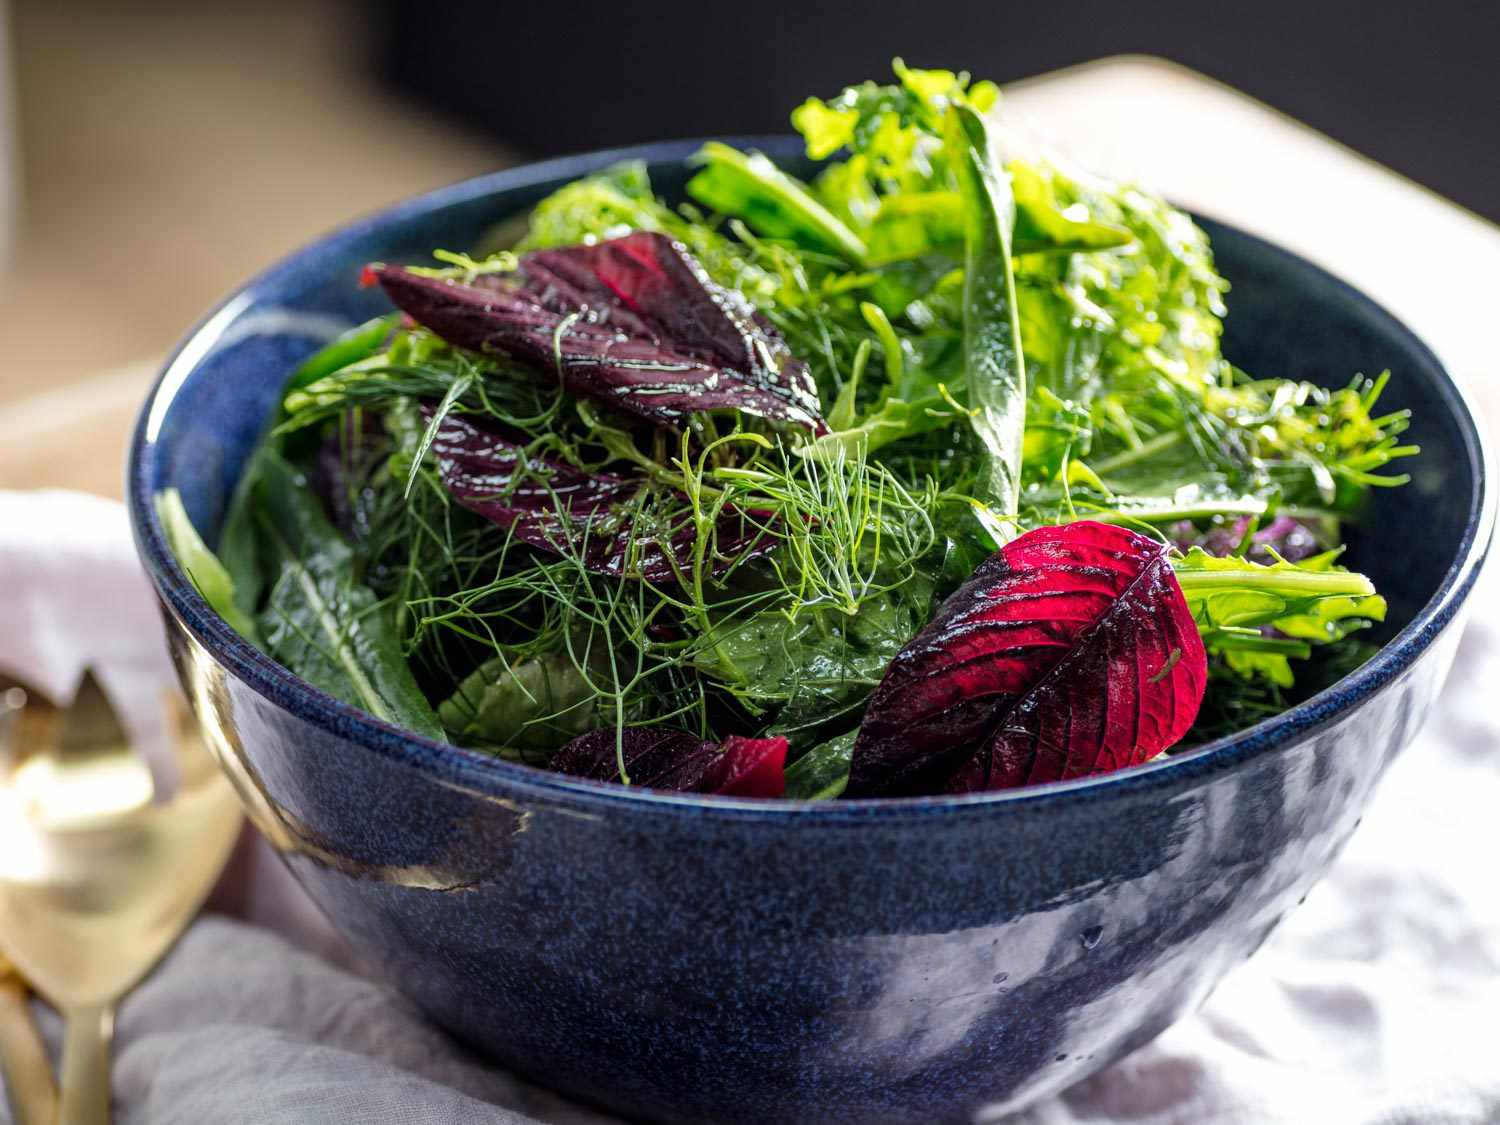 Dressed mixed greens salad in a blue bowl